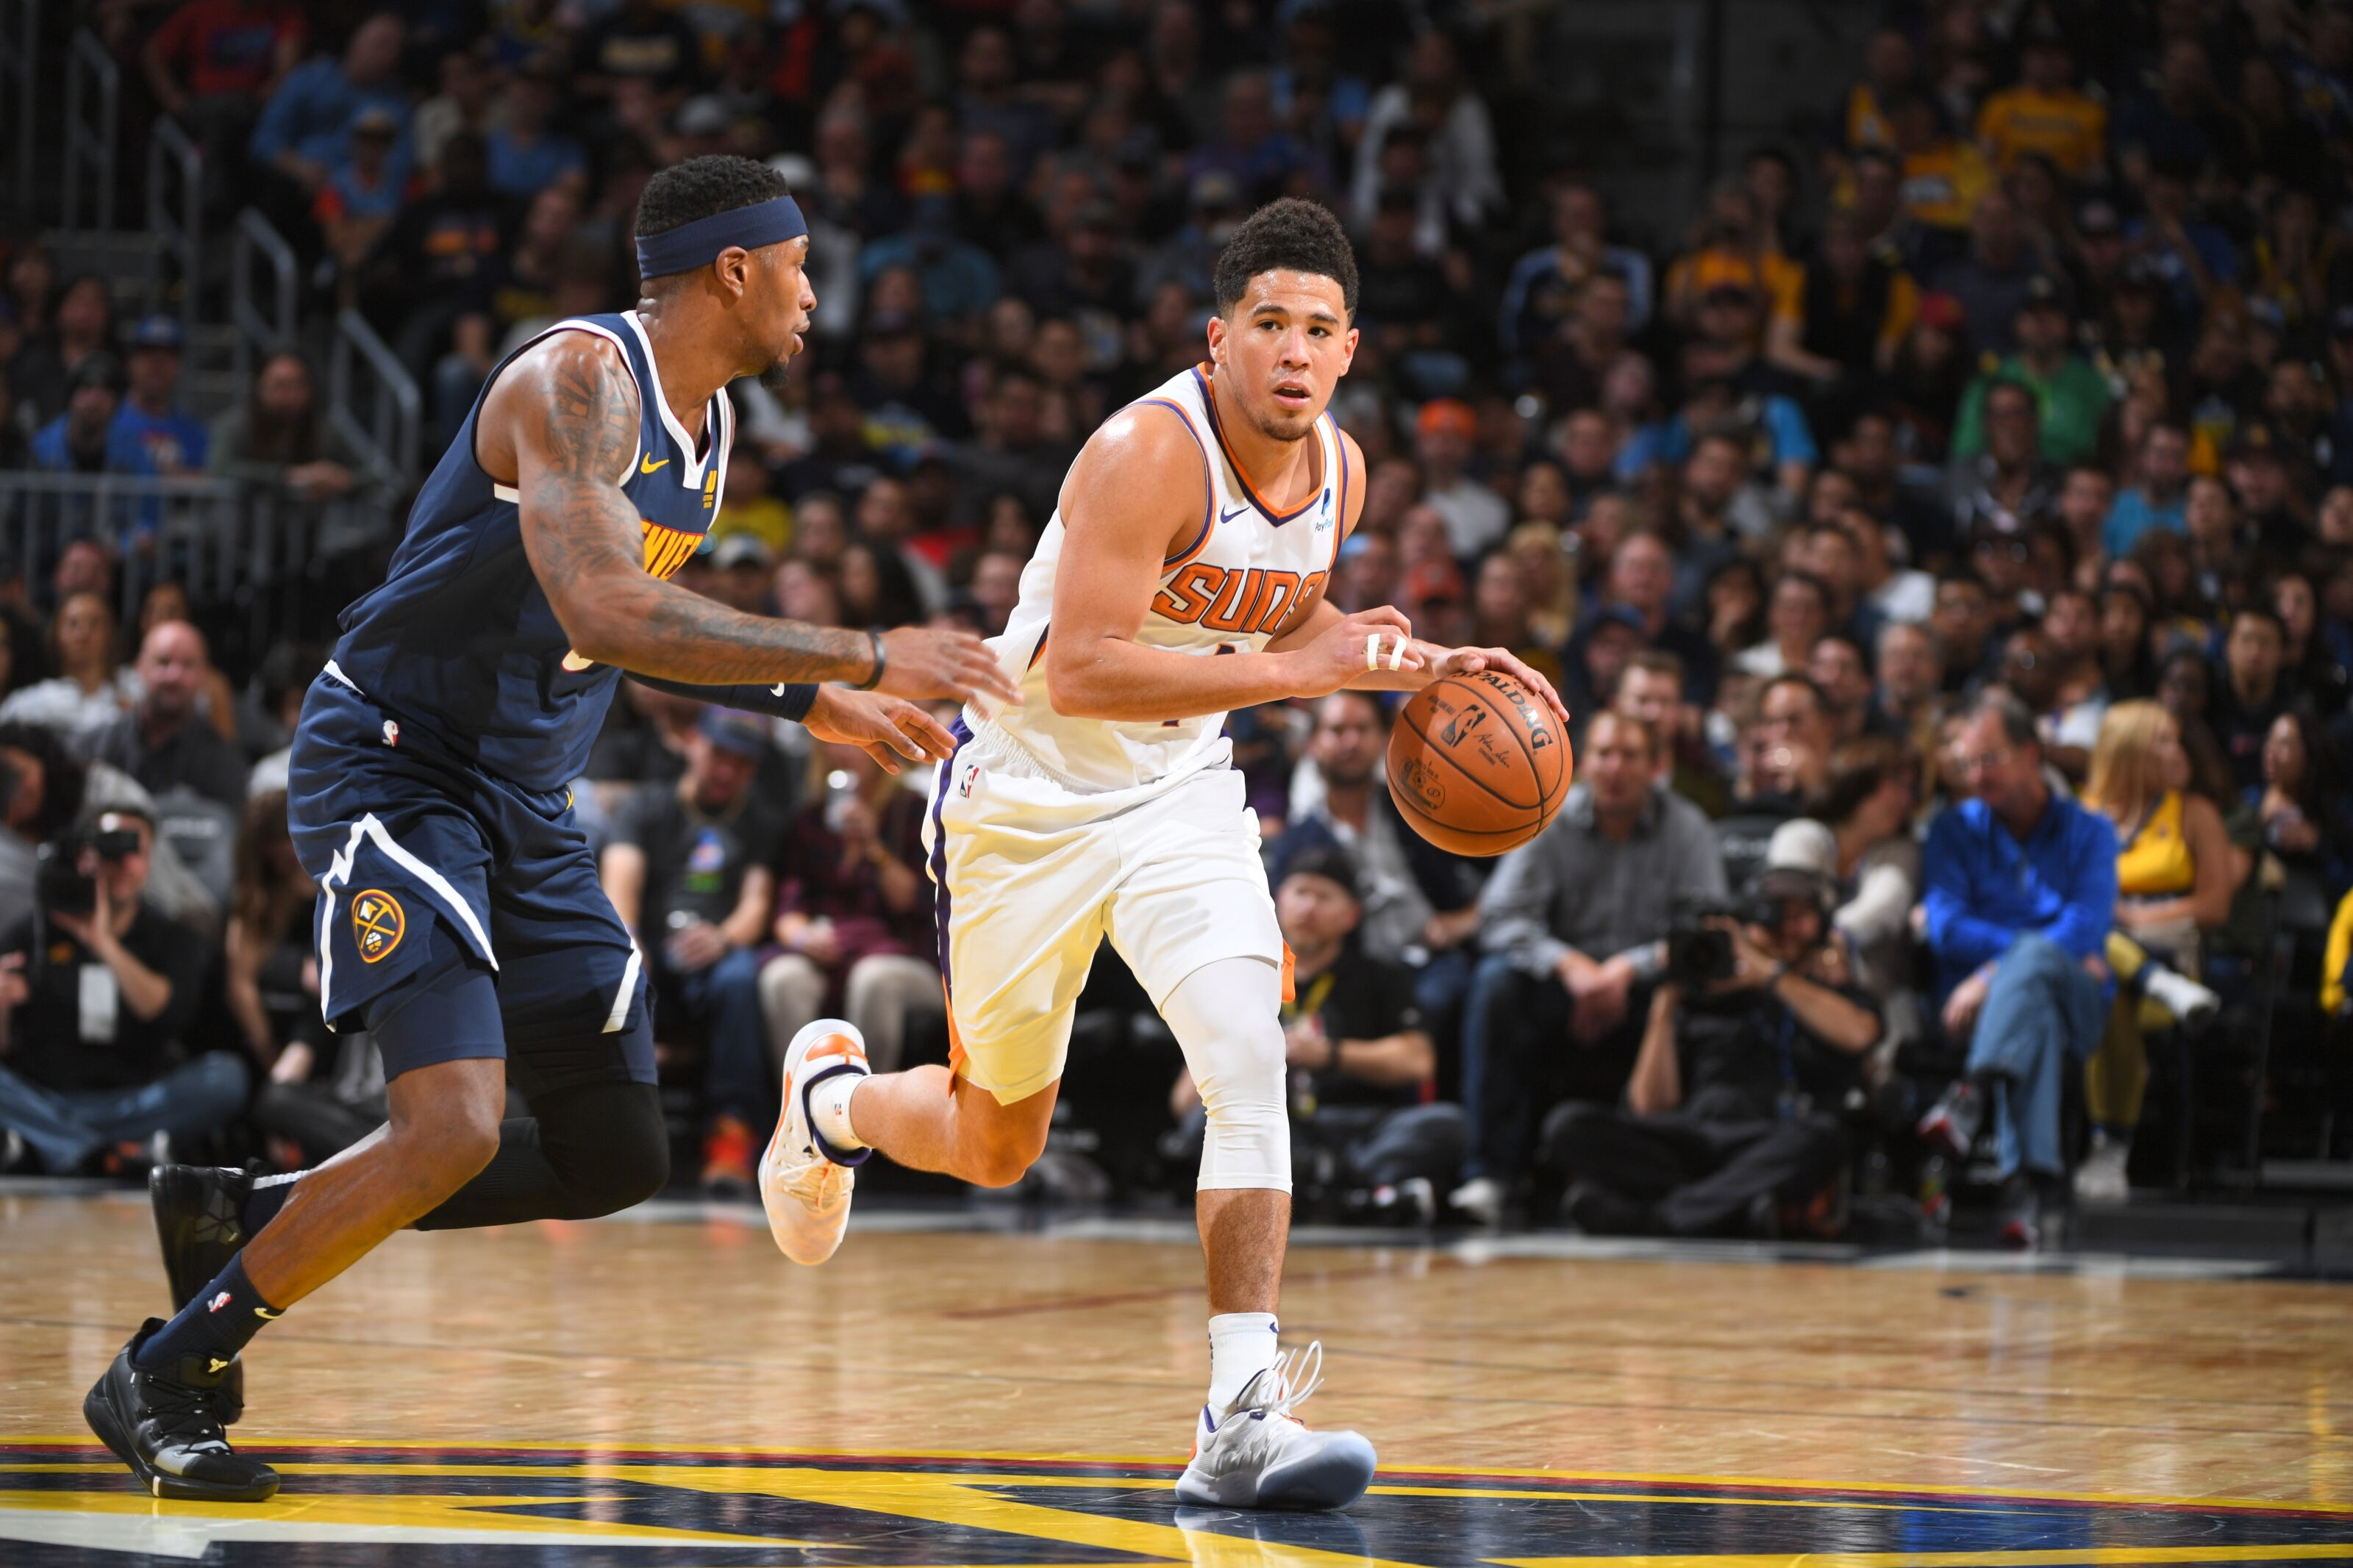 a6d61ef8caa Point guard Devin Booker is doing good for Phoenix Suns - Valley of the Suns